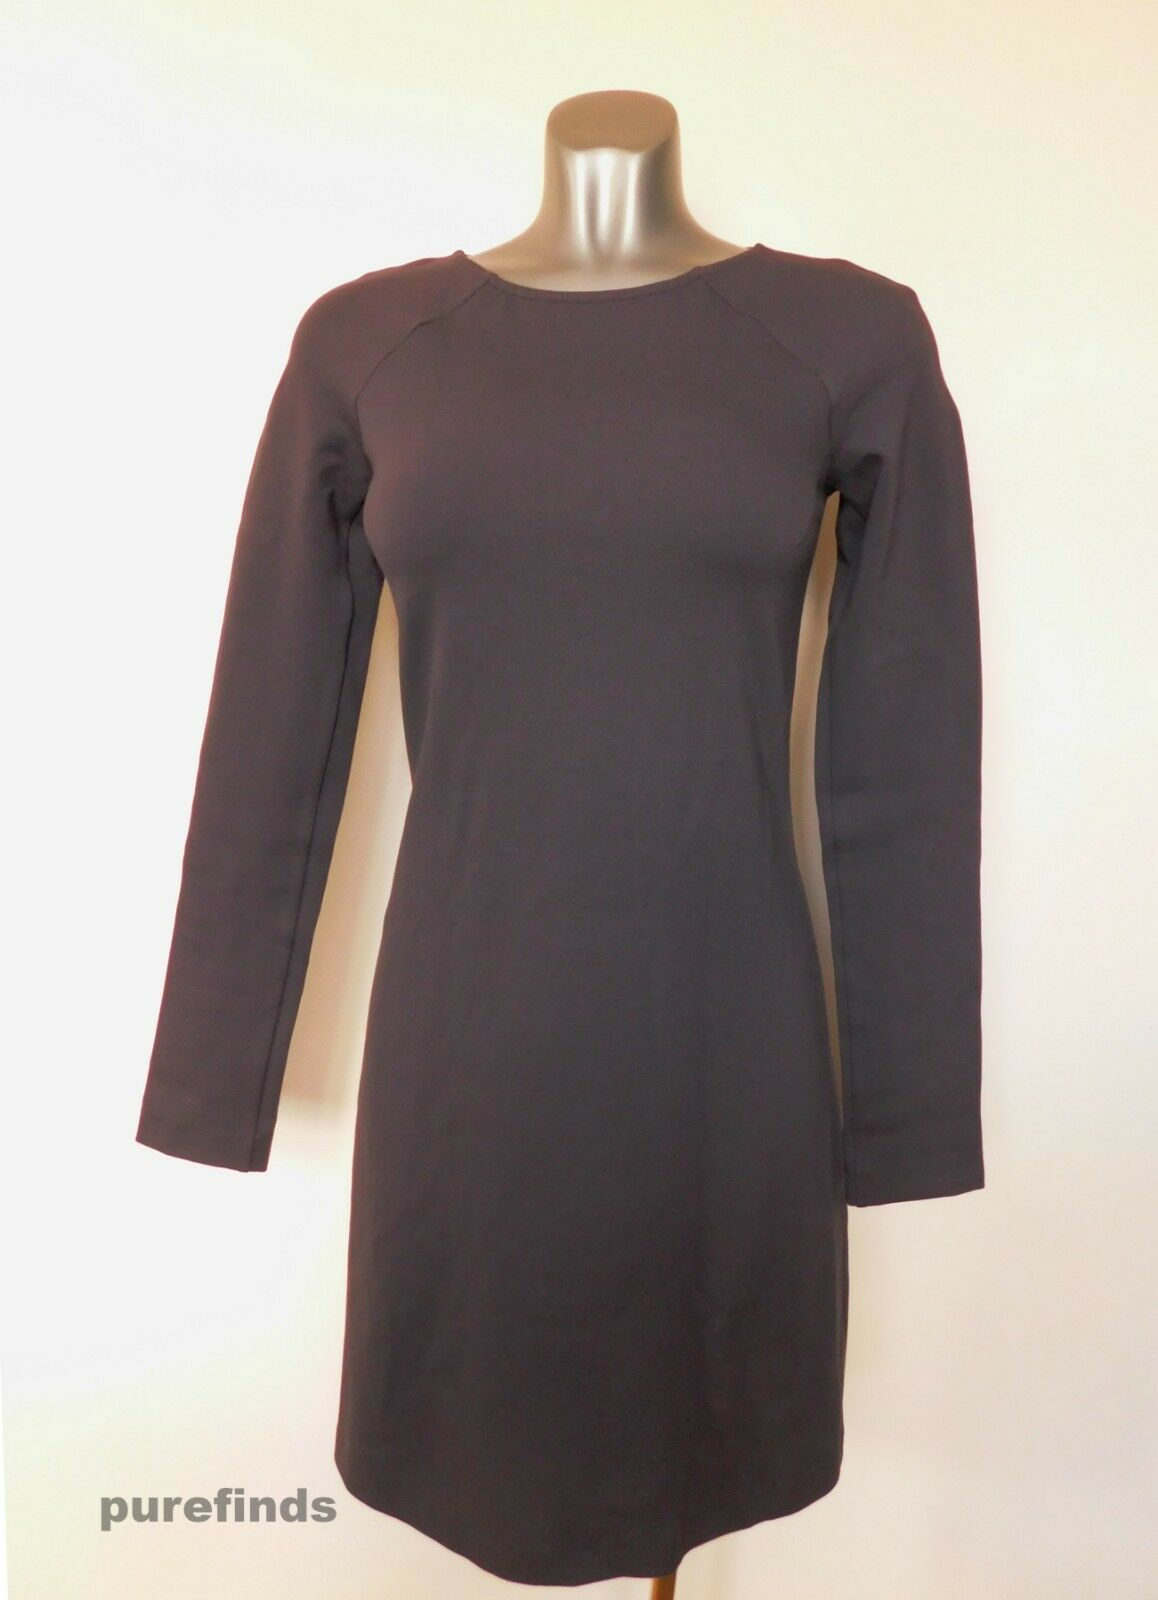 WOLFORD MOLLY DRESS IN RAVEN, Größe 34, USA 2-4, RRP  New in box